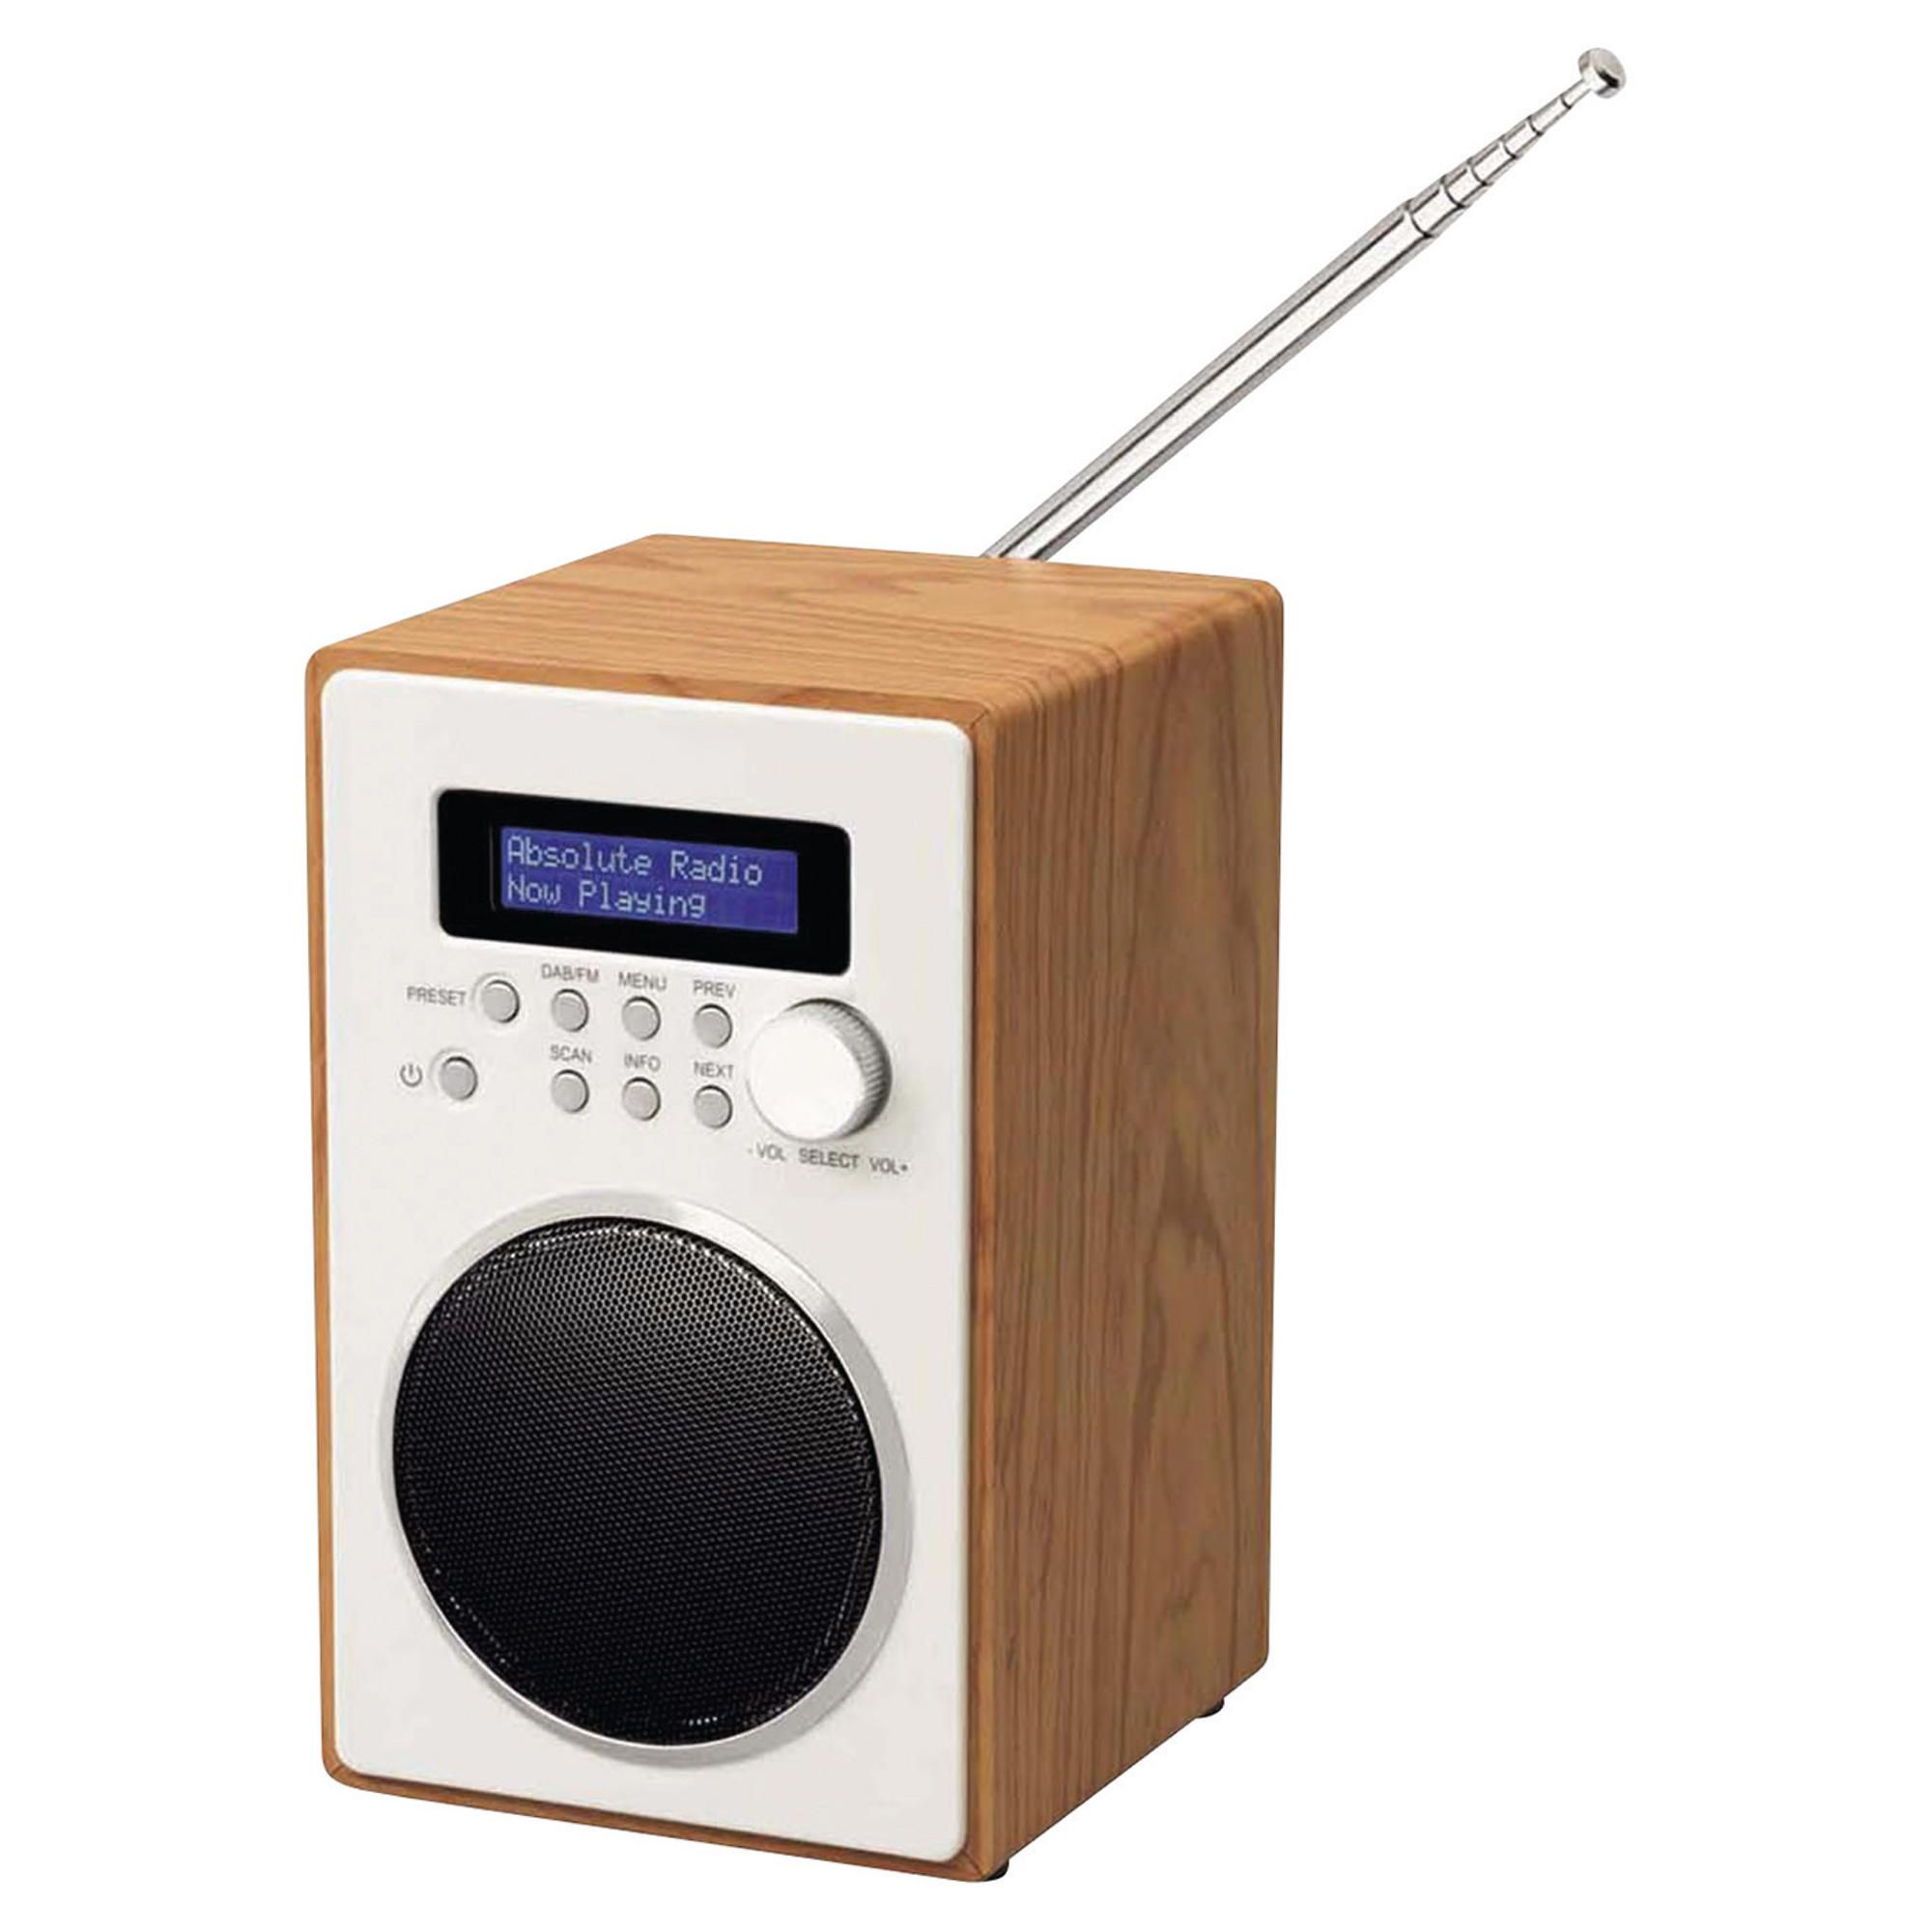 digital radio alarm clock tesco myshop tesco digital clock radio cr112tb alarm clock fm dab. Black Bedroom Furniture Sets. Home Design Ideas